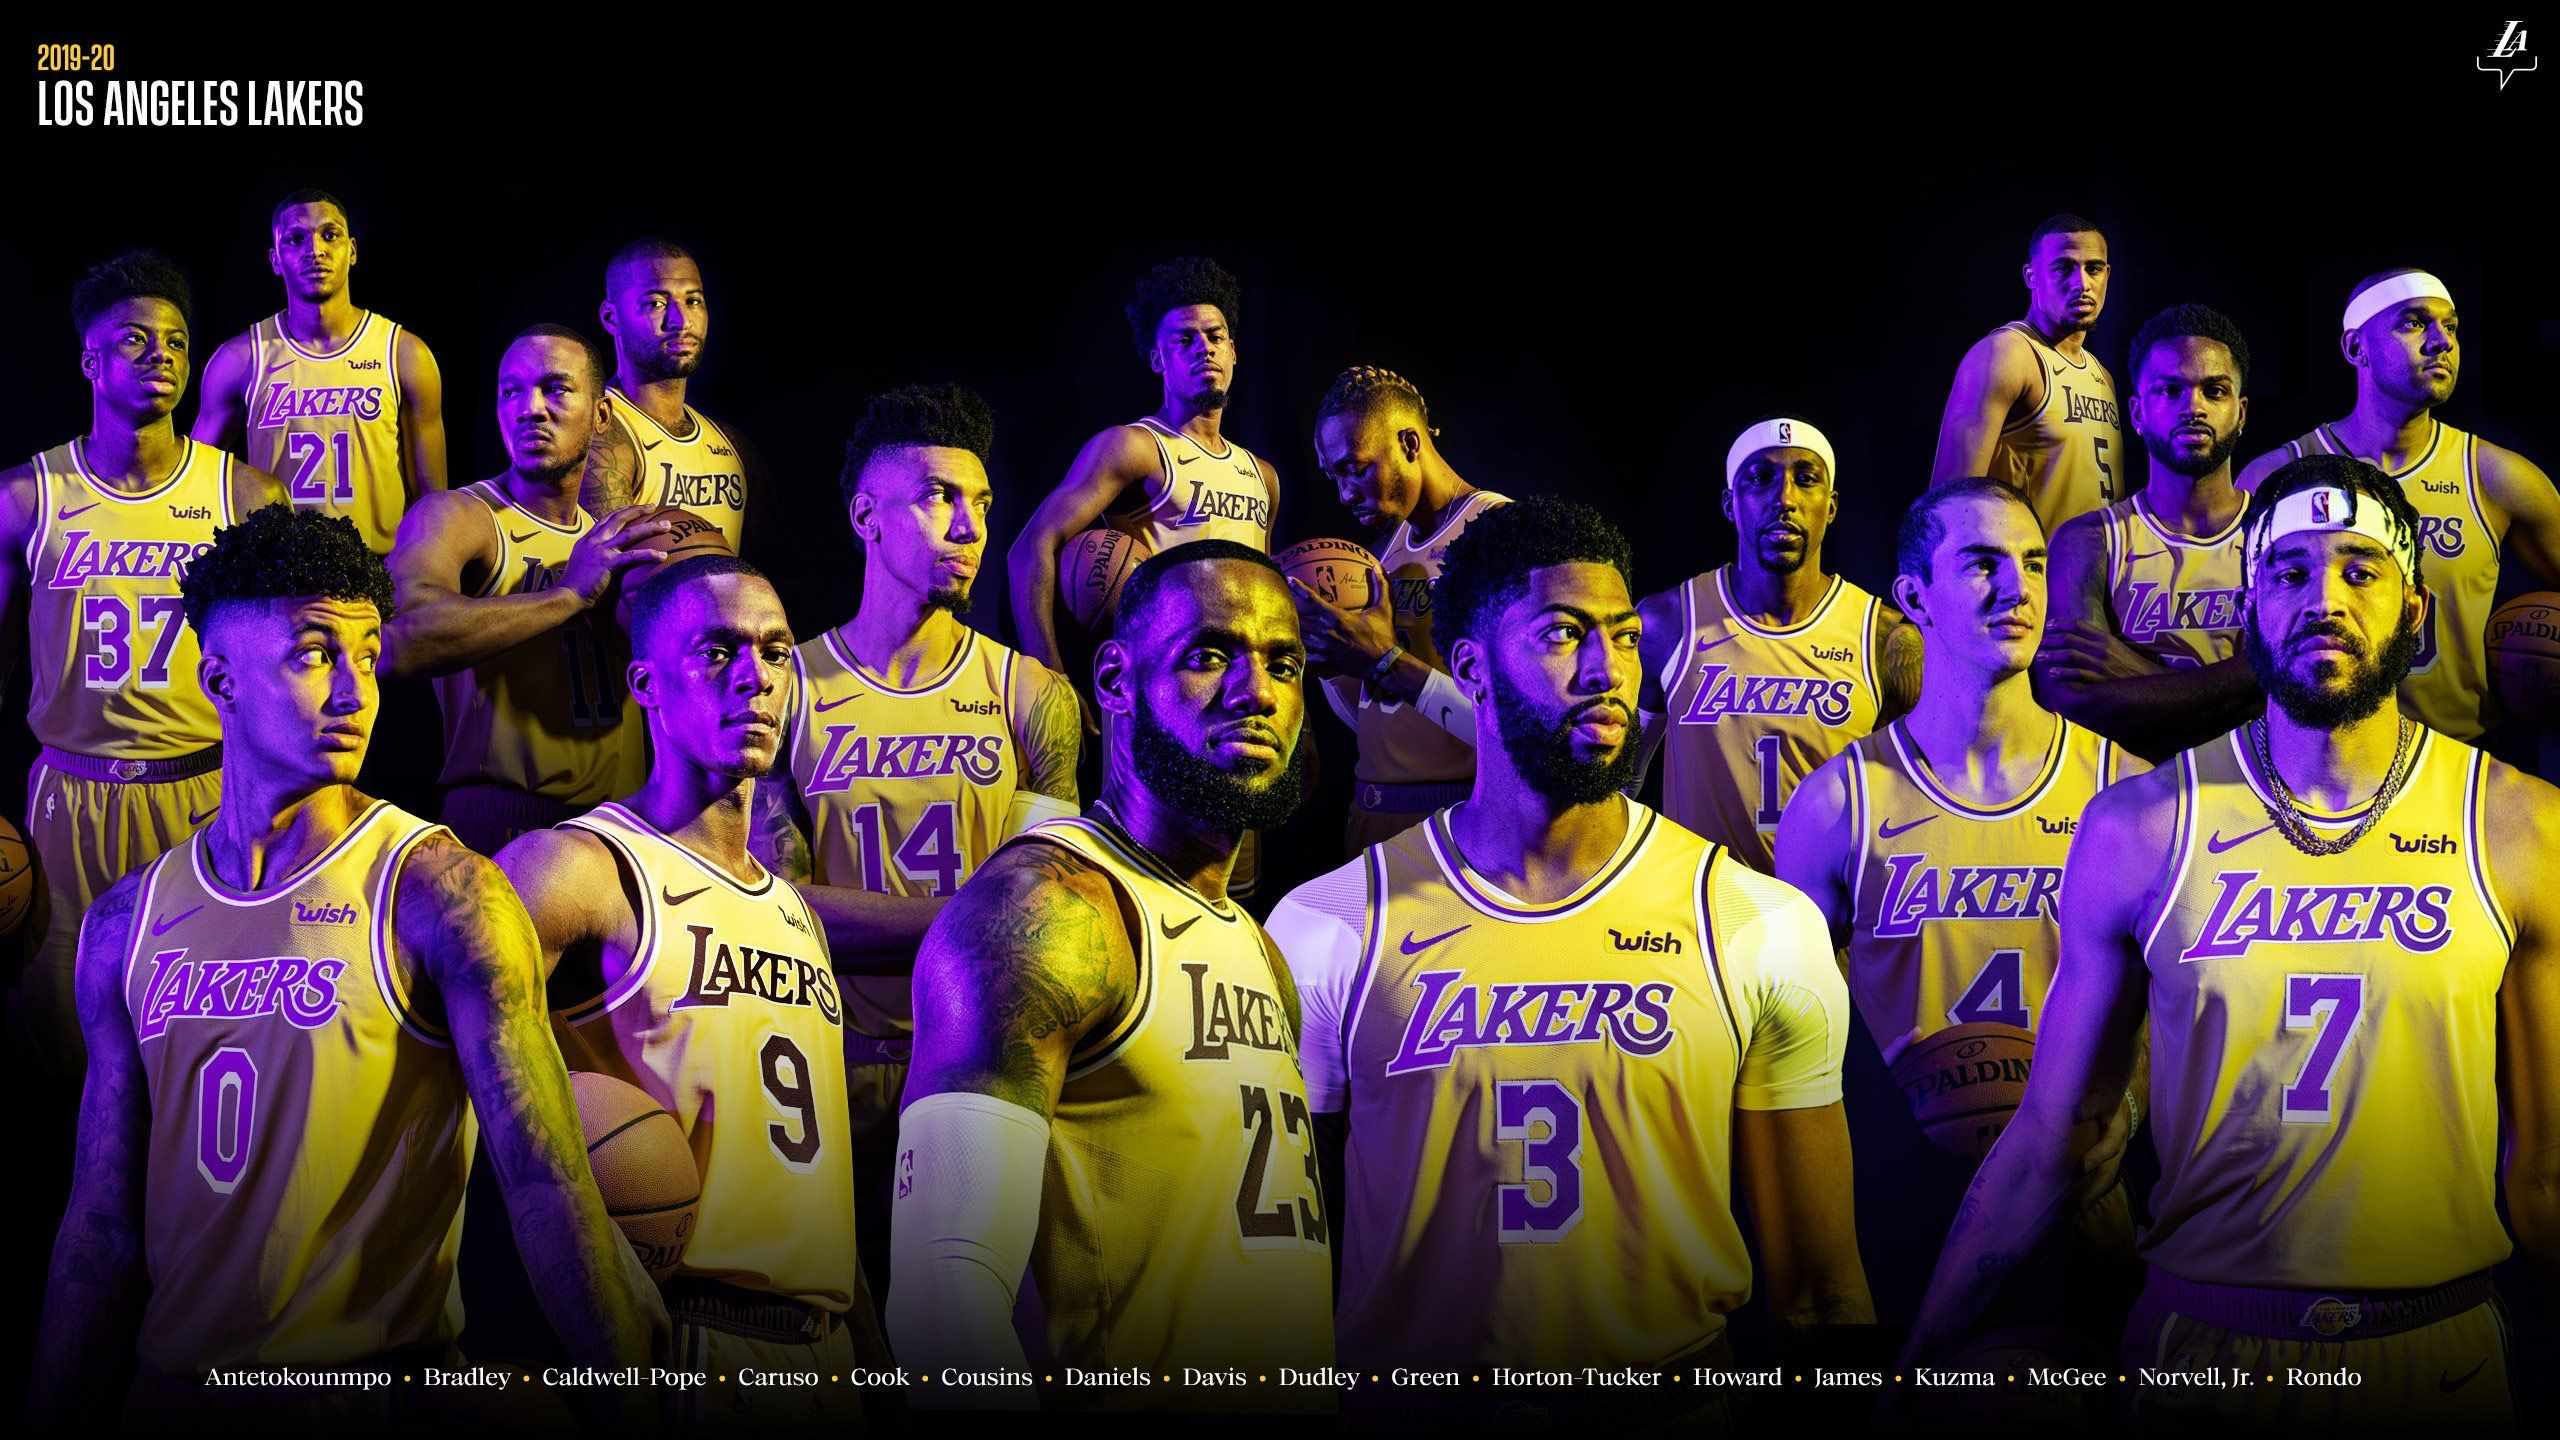 Los Angeles Lakers 2019 2020 Lakers Wallpaper Los Angeles Lakers Lakers